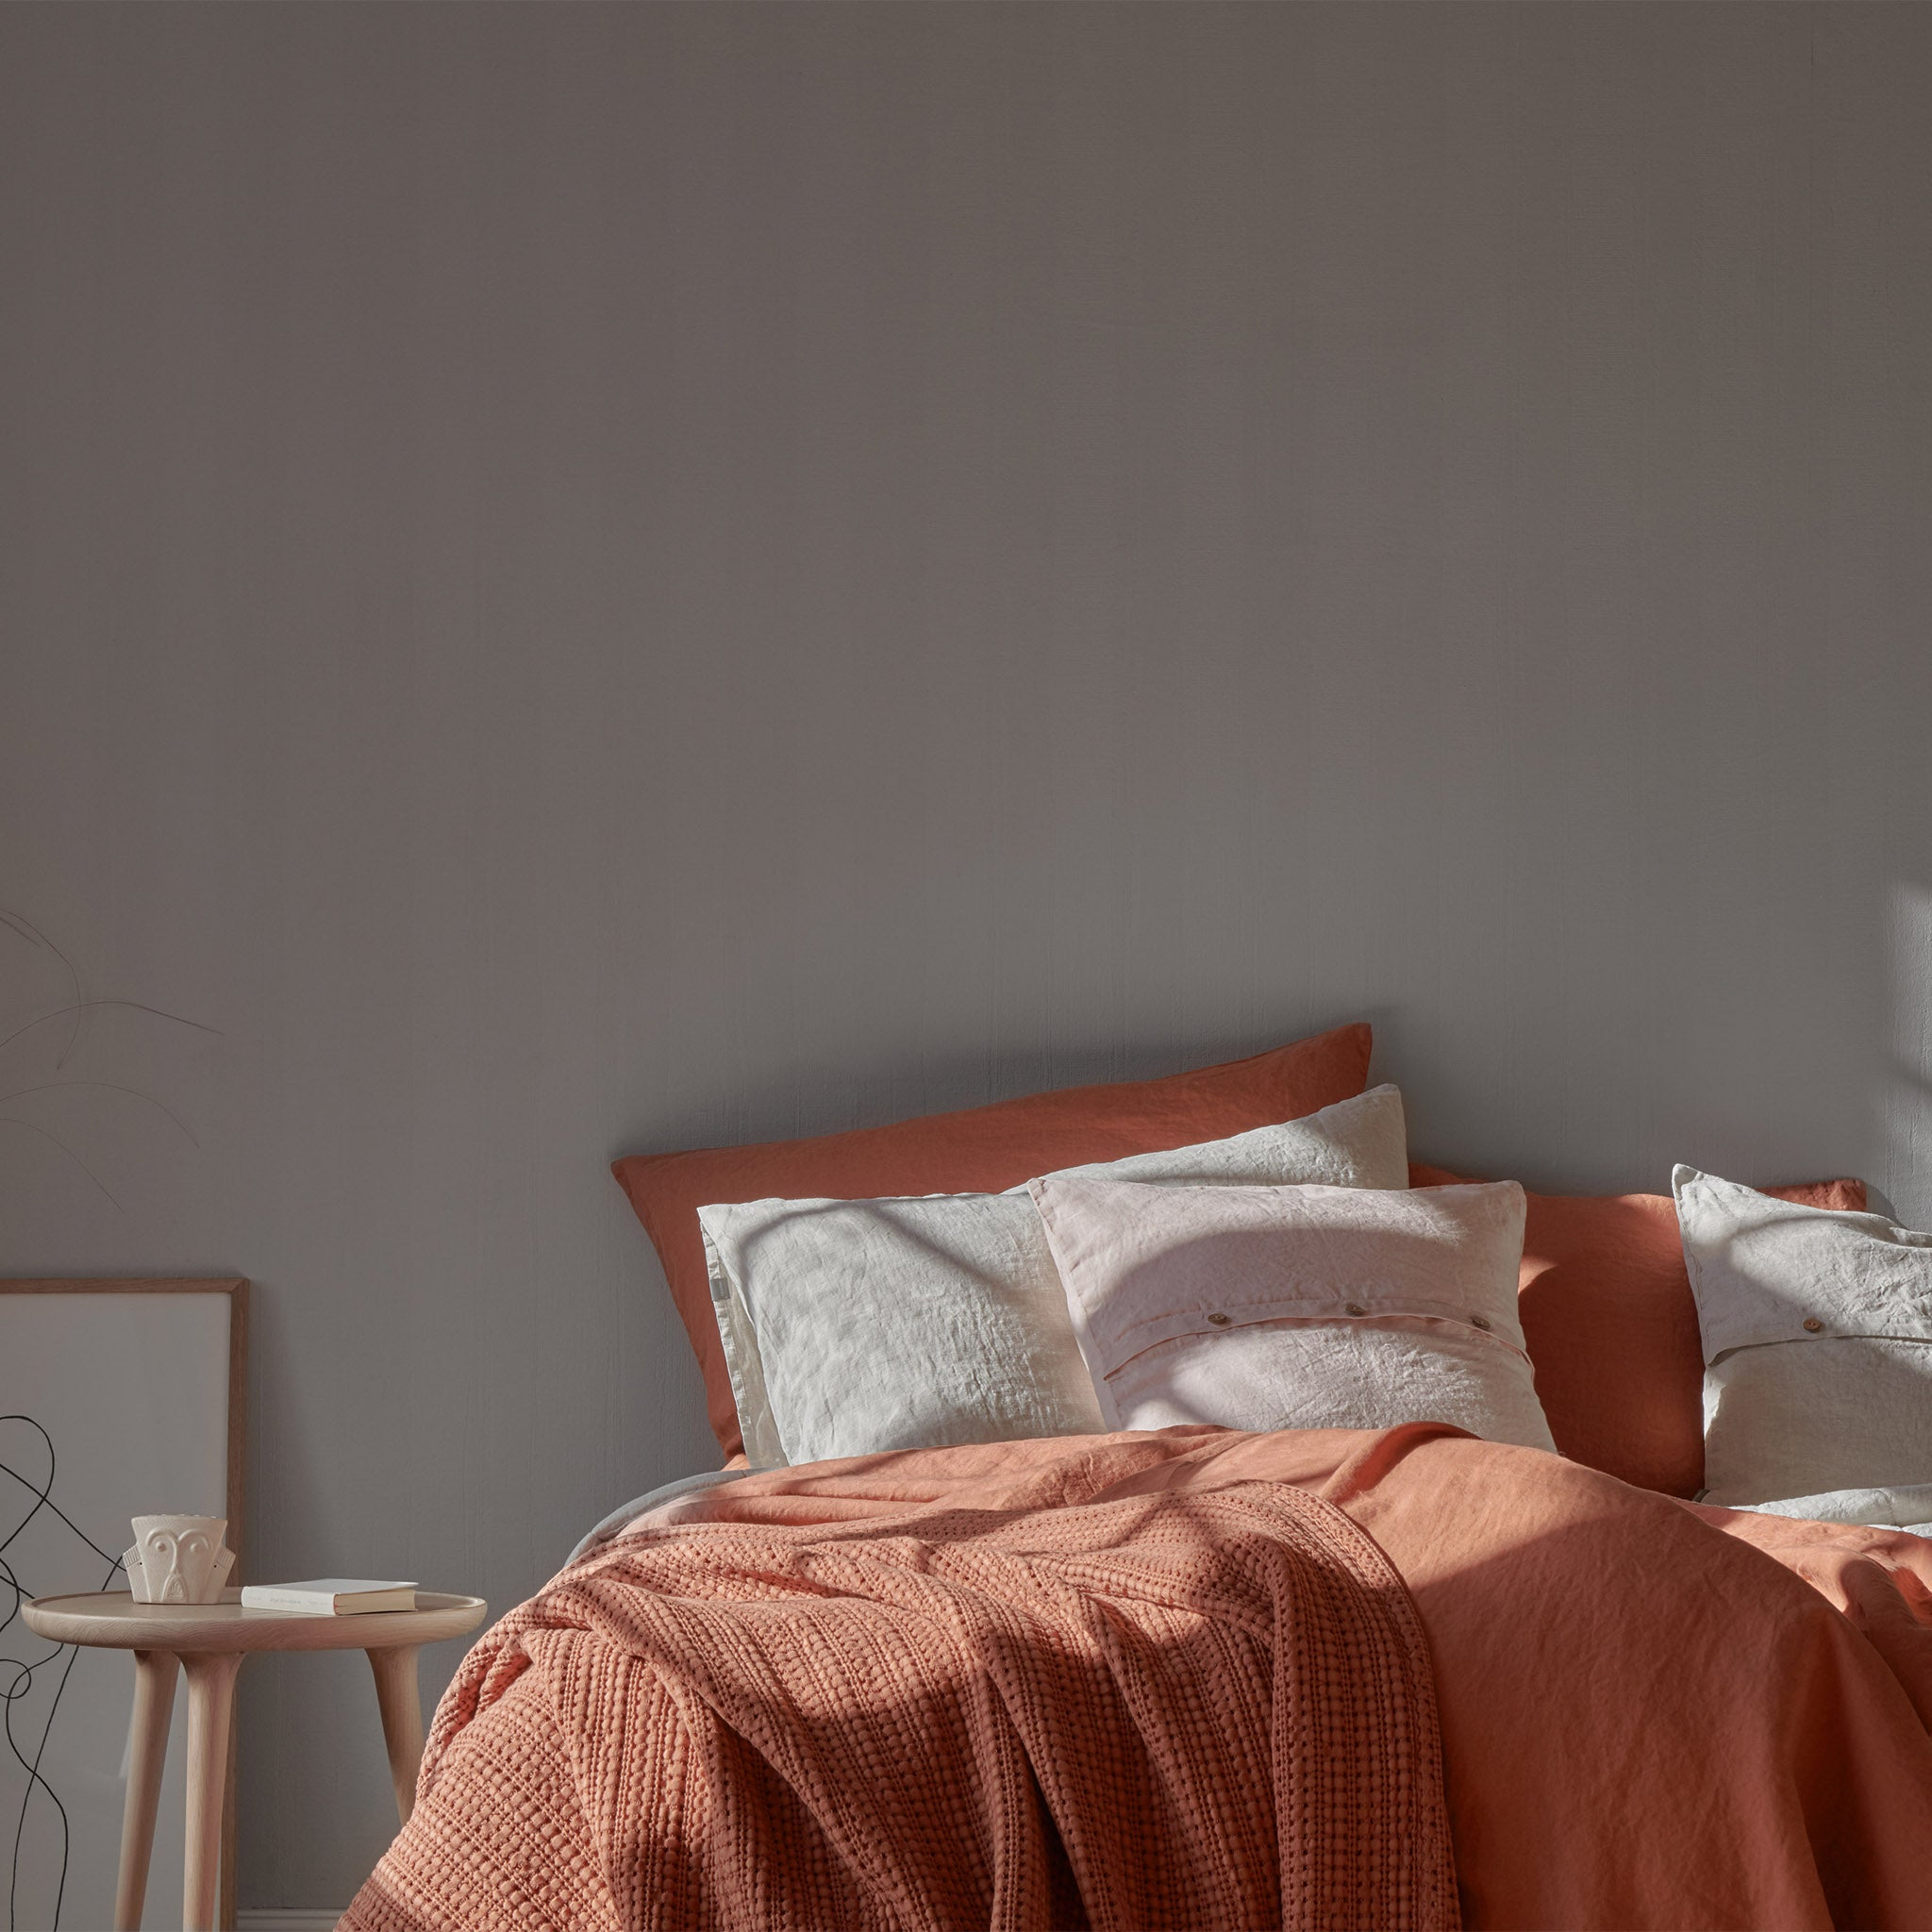 Mafalda Linen Bed Linen in terracotta | Home & Living inspiration | URBANARA